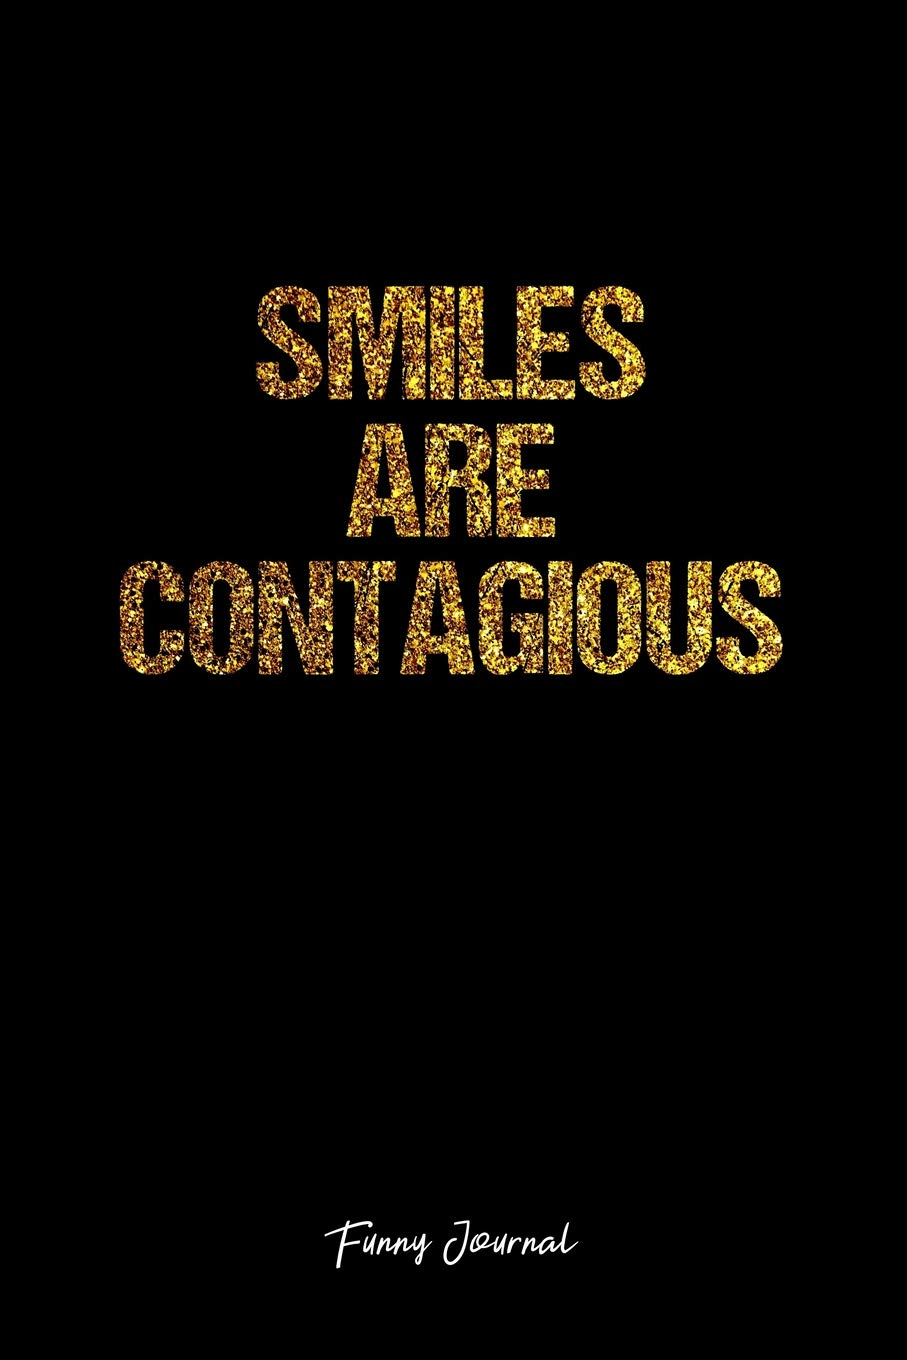 Funny Journal Lined Journal Smiles Are Contagious Funny Quote Smile Black Diary Planner Gratitude Writing Travel Goal Bullet Notebook 6x9 120 Pages Designs Vepa 9781076330185 Amazon Com Books